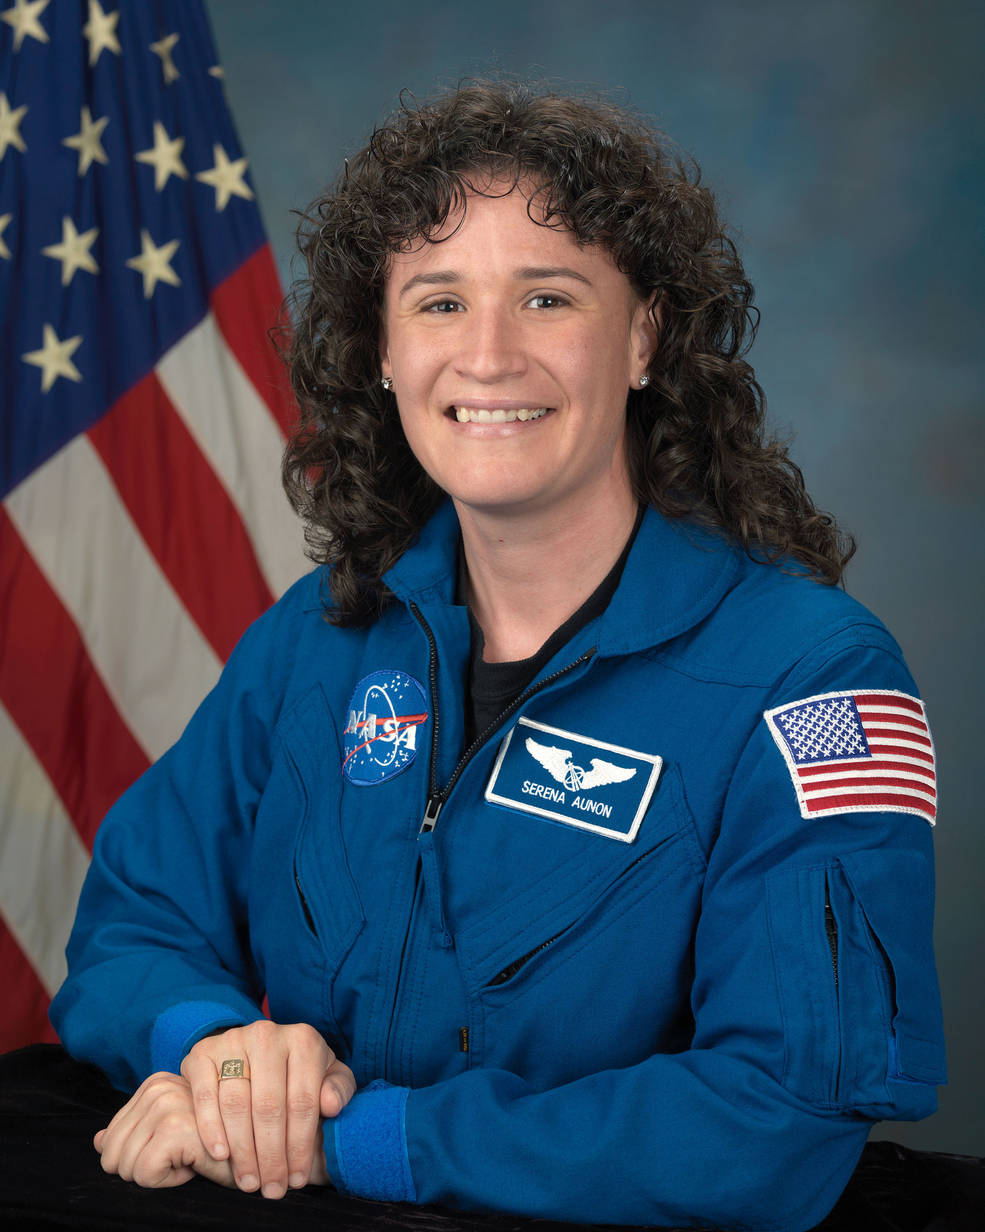 Official portrait of NASA astronaut Serena Auñón-Chancellor